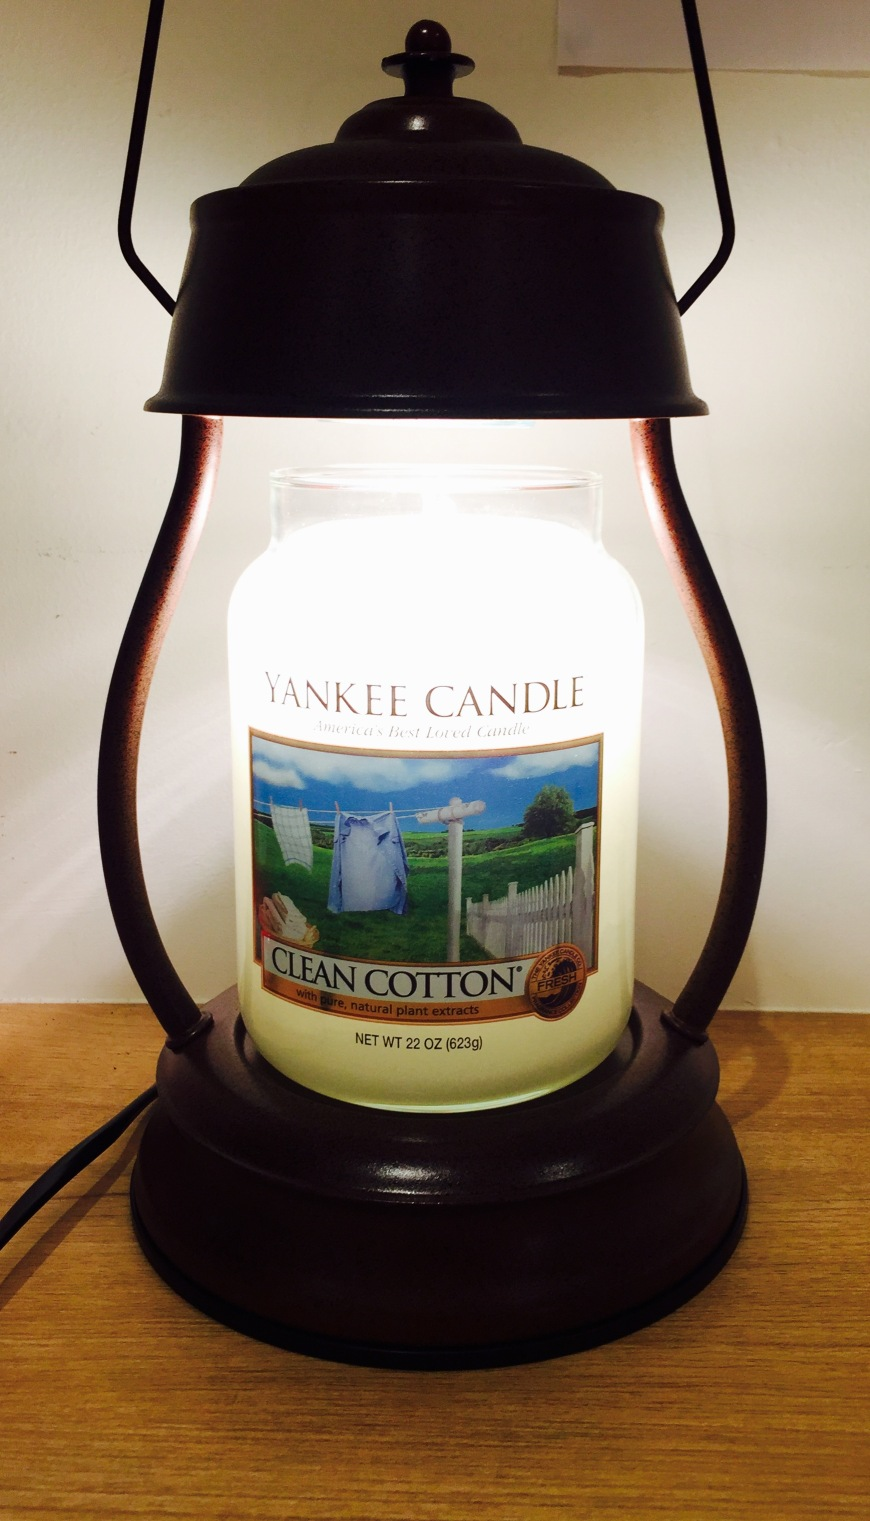 Yankee Candle Make Up My Mind Please